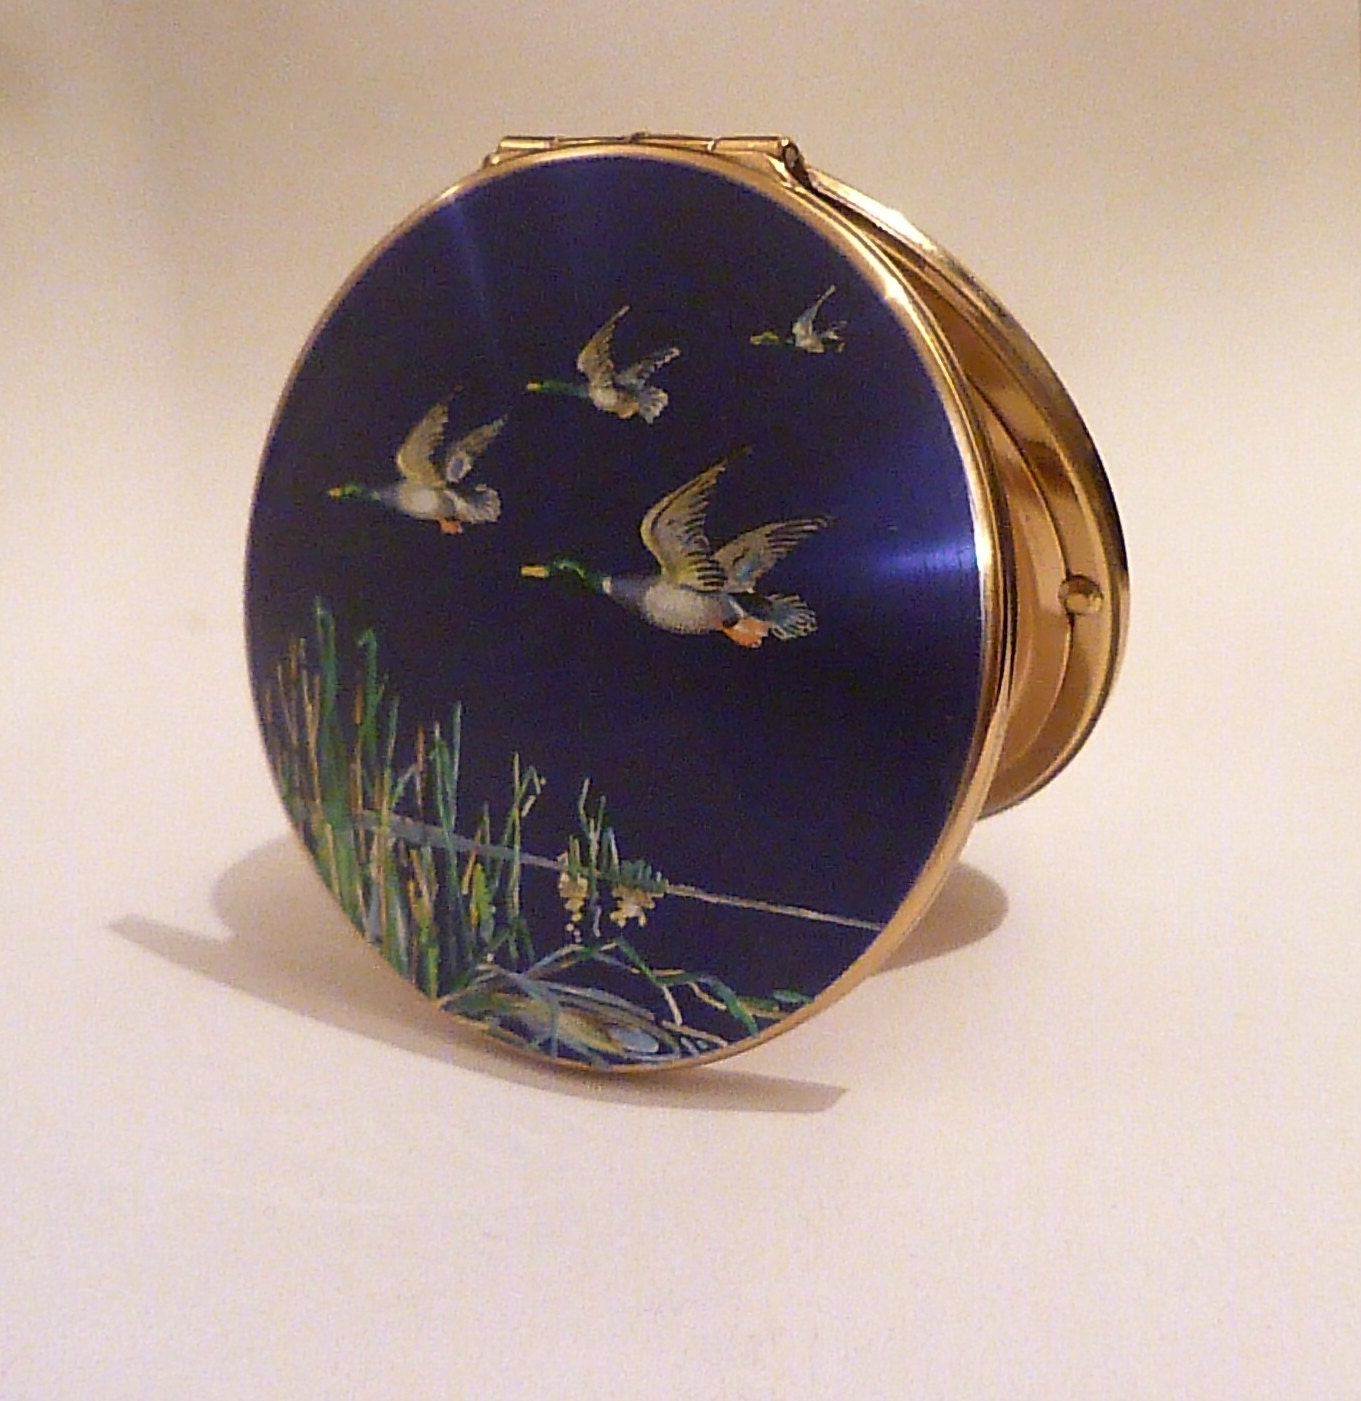 Vintage compact Stratton compacts something blue gifts